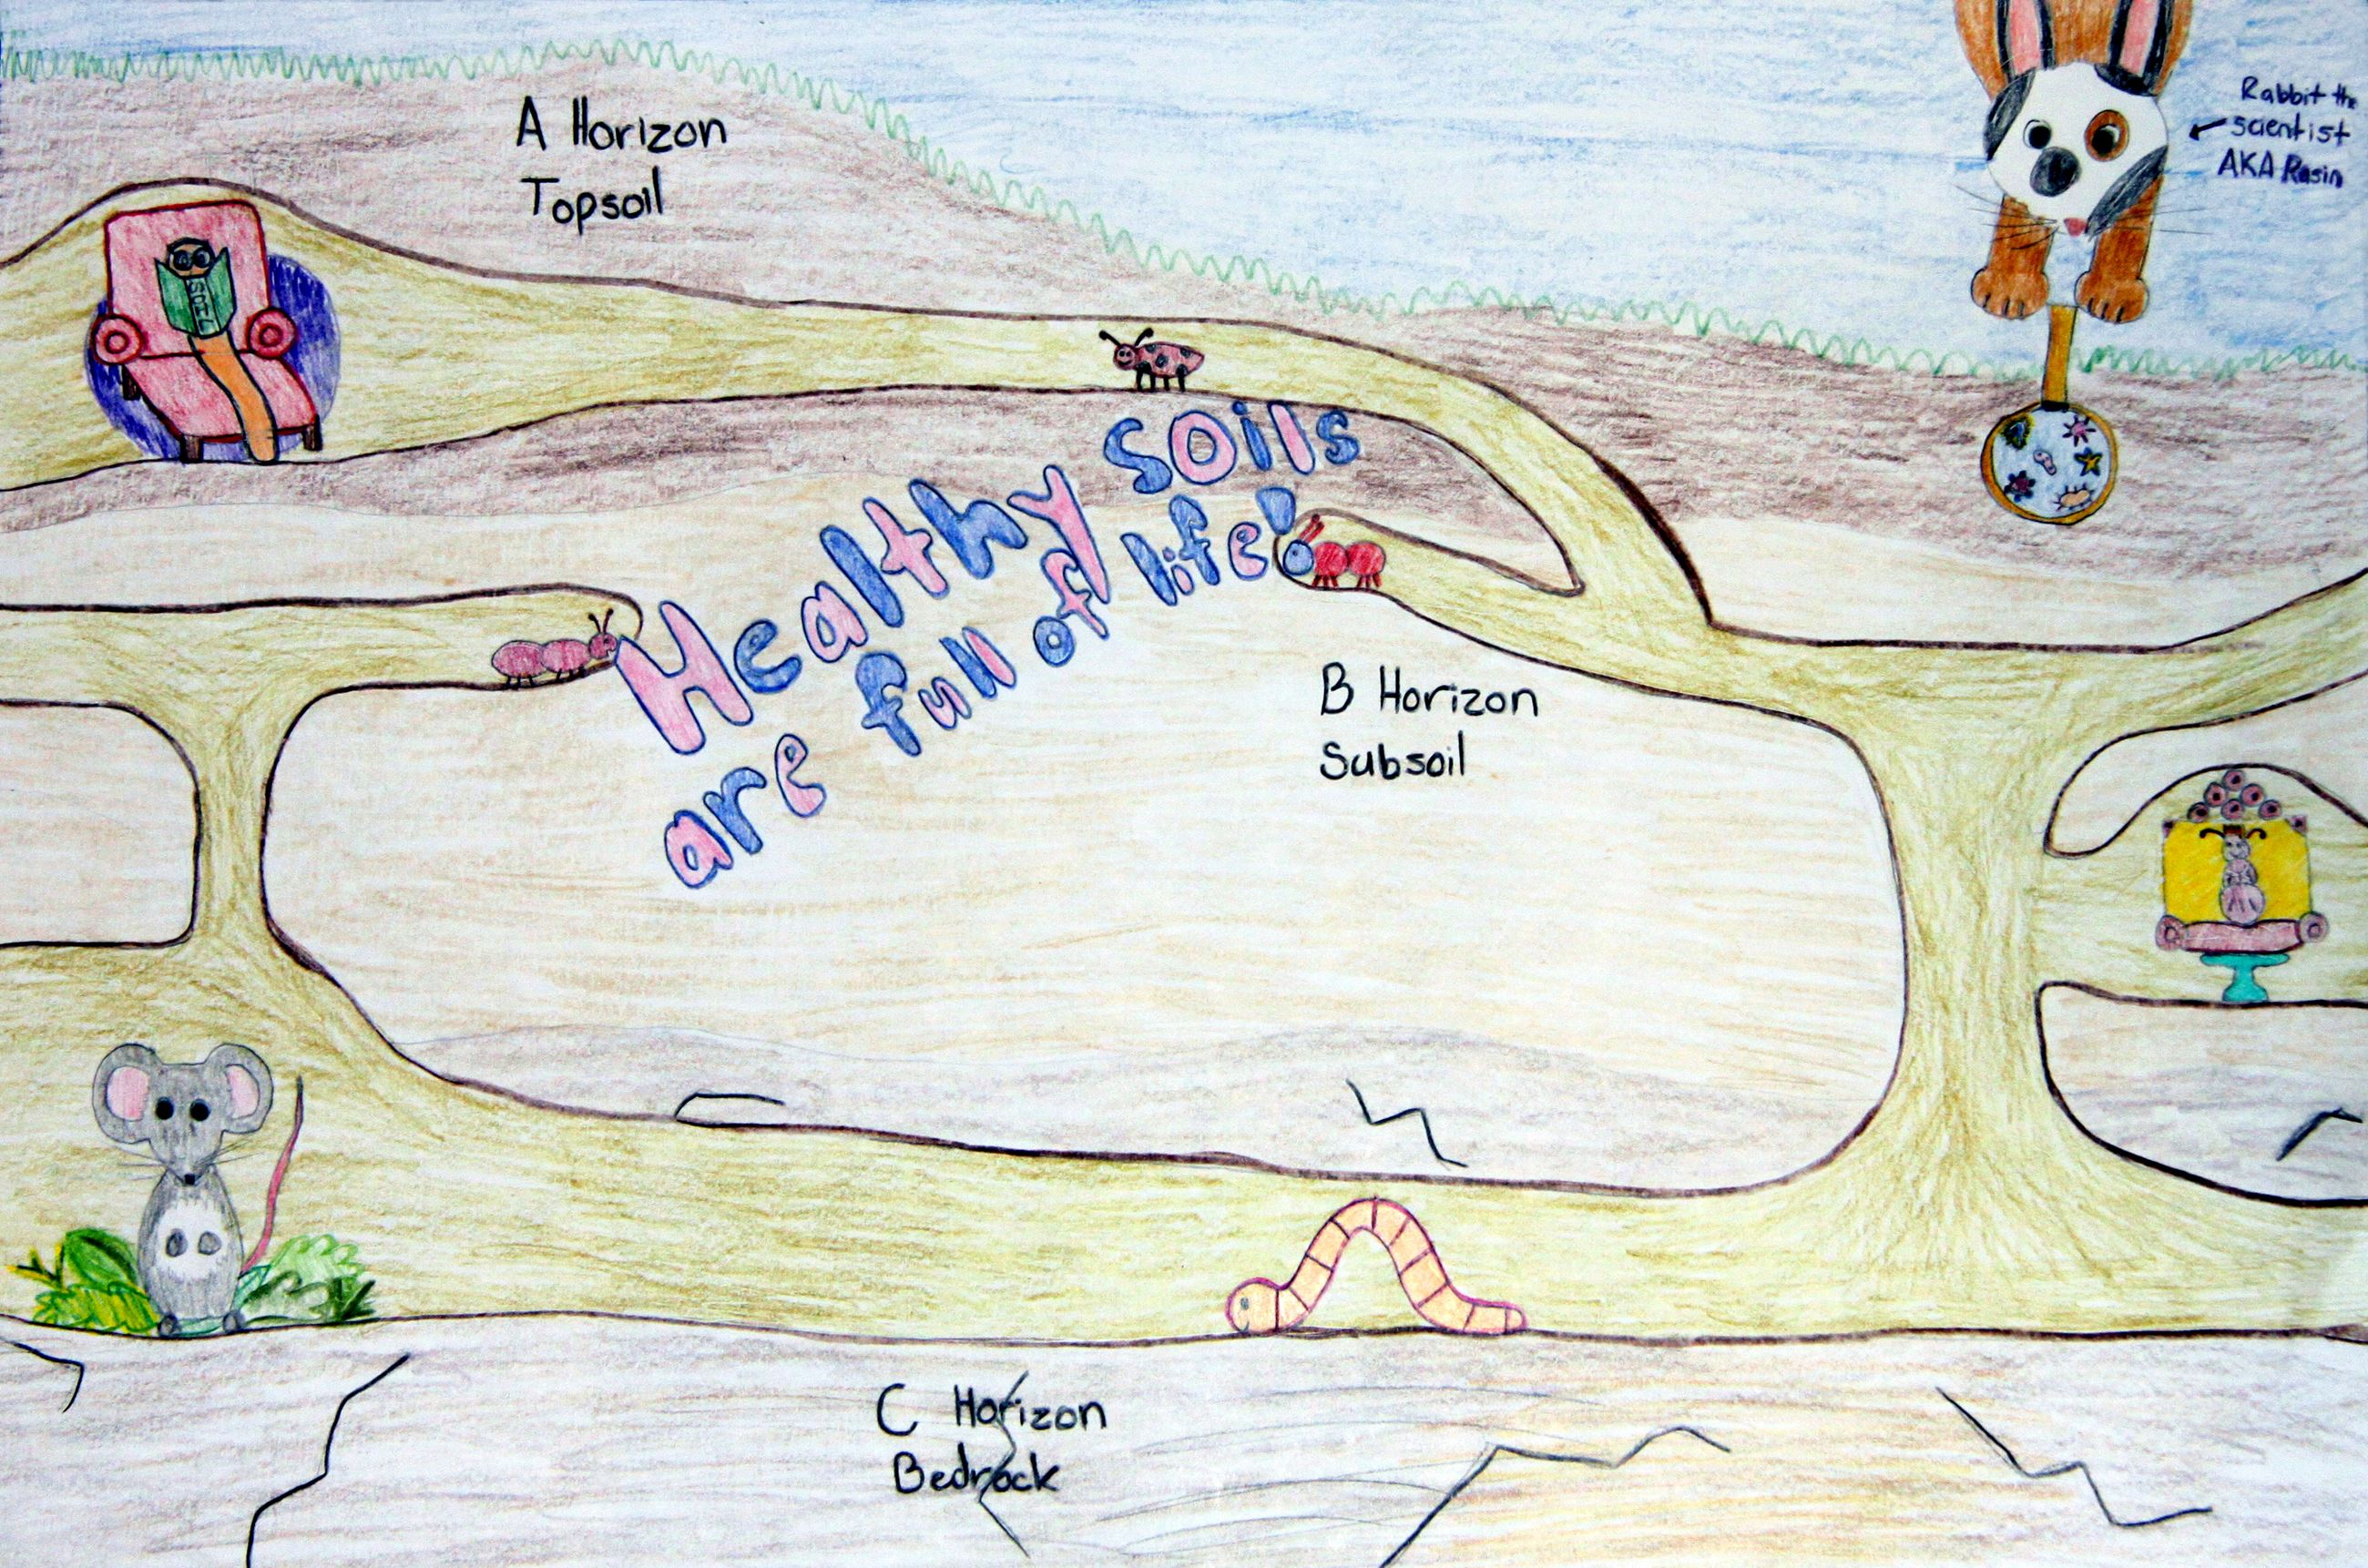 Grade 4 to 6, Third Place Winner: Amie Birk